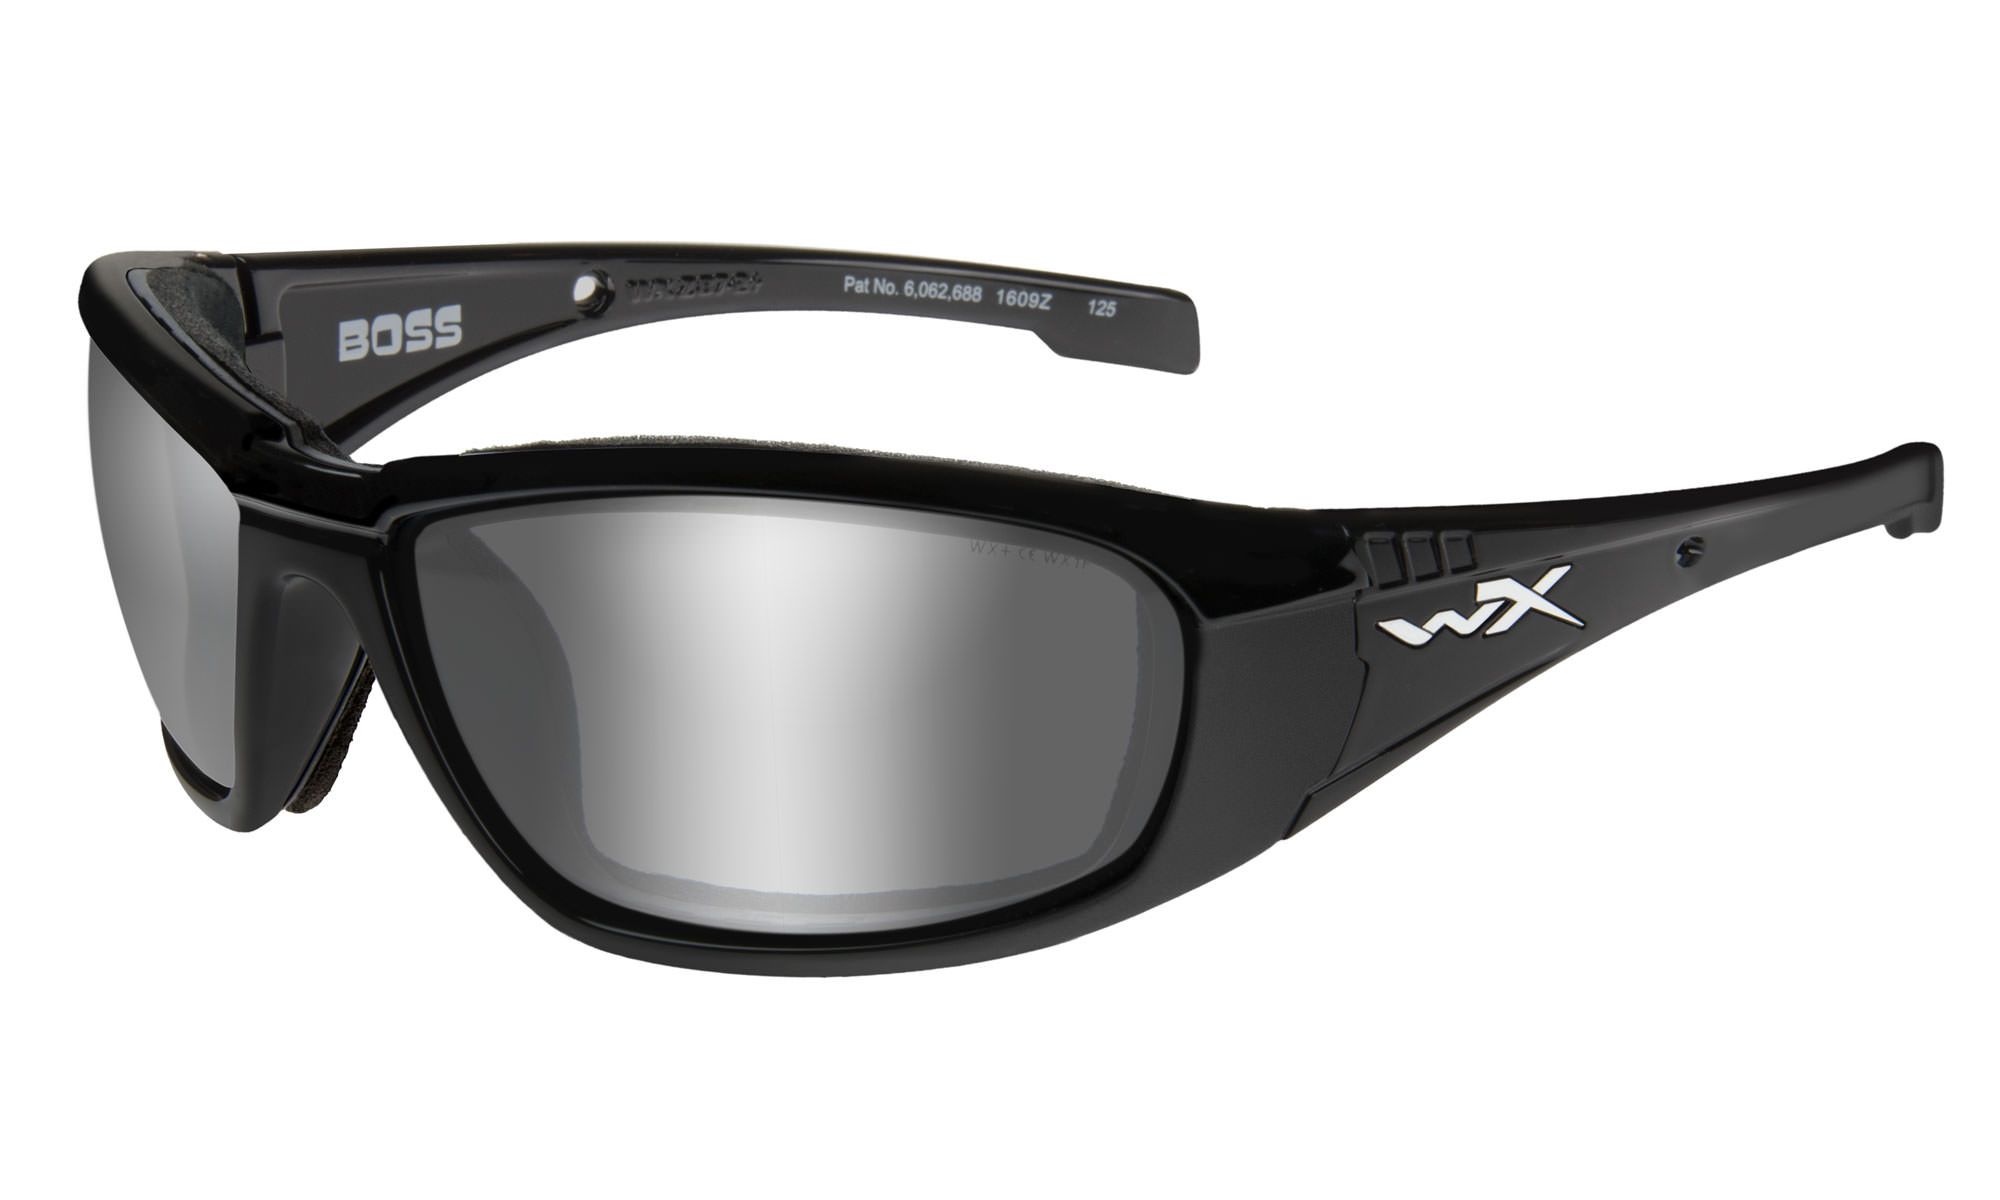 32f176a17cd7 Wiley-X WX Boss Gloss Black with Grey Silver Flash Lenses